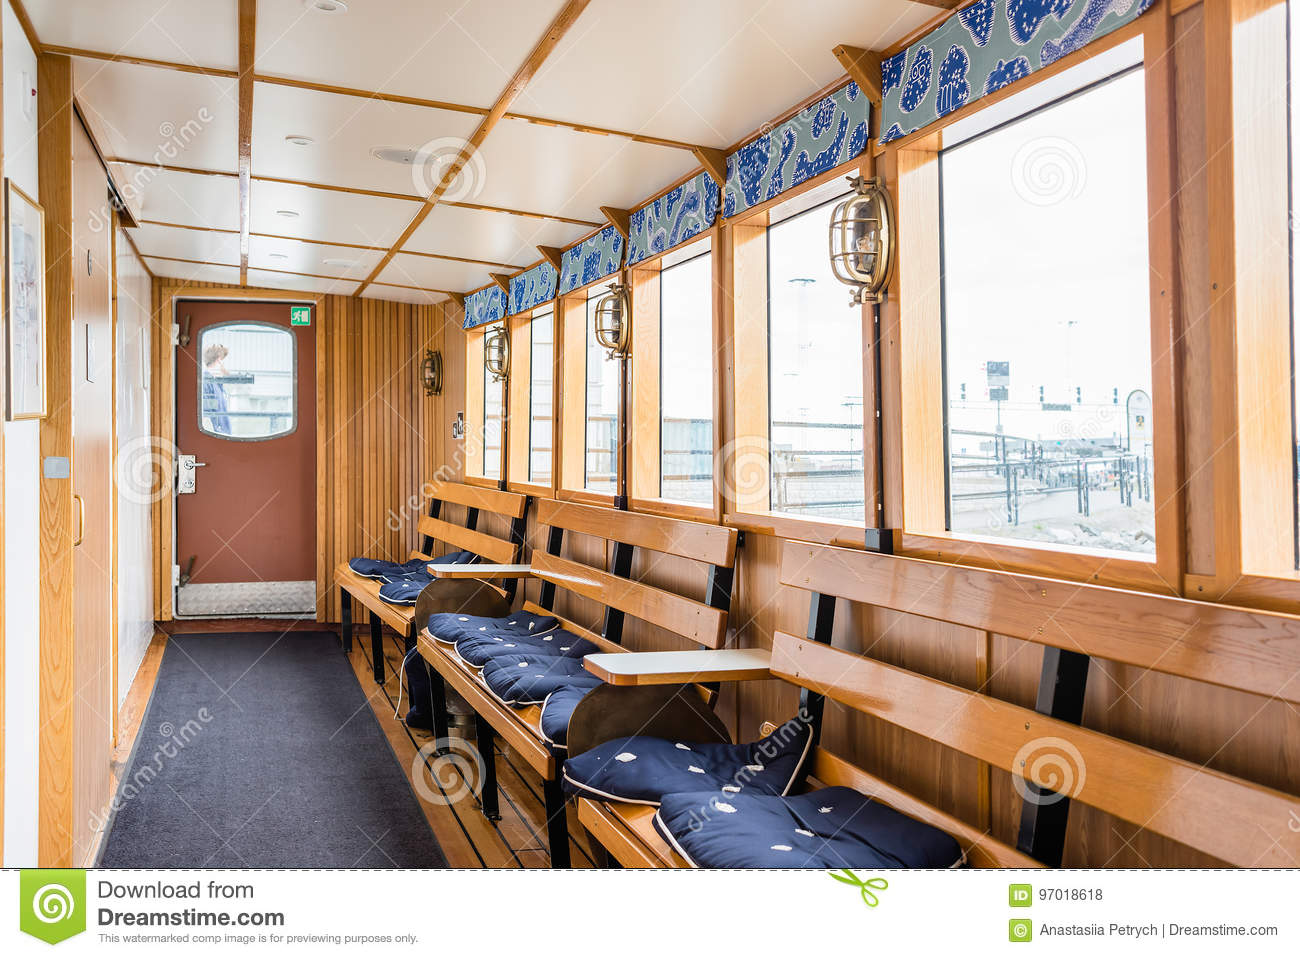 Swell Stockholm Sweden July 12 2017 Boat Interior With Evergreenethics Interior Chair Design Evergreenethicsorg